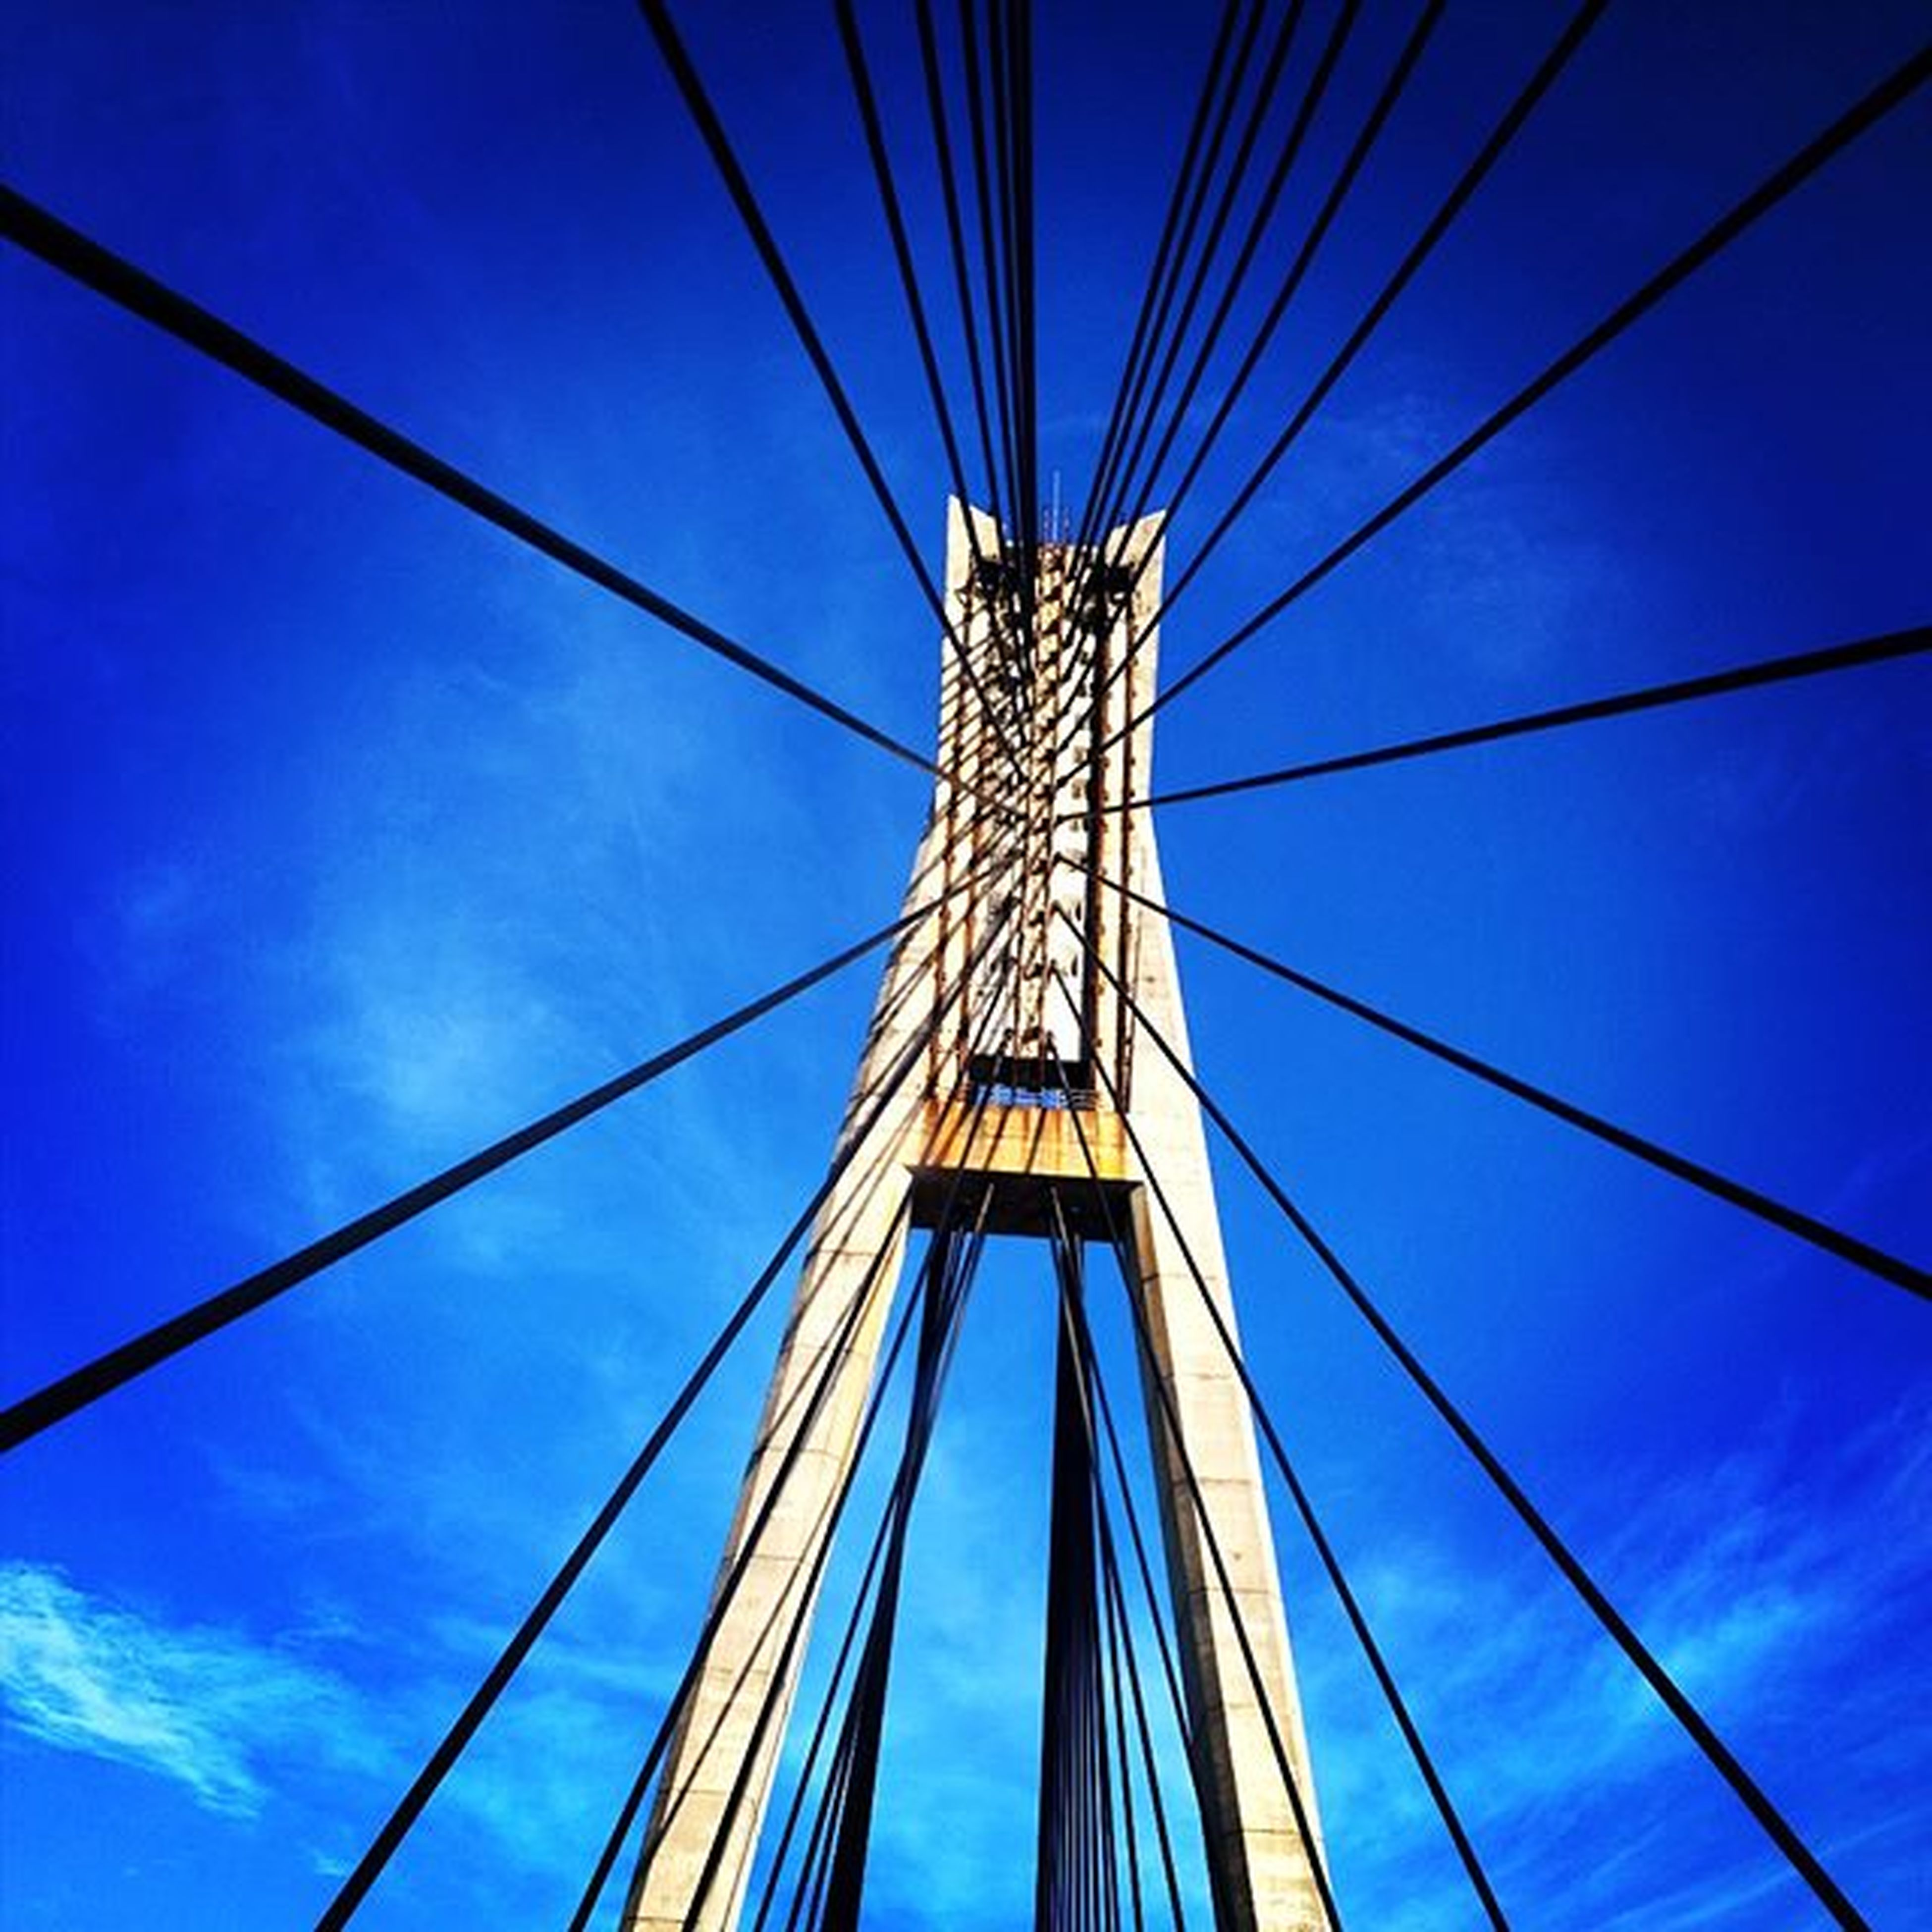 low angle view, blue, connection, cable, sky, built structure, suspension bridge, engineering, steel cable, power line, bridge - man made structure, electricity, cable-stayed bridge, transportation, architecture, electricity pylon, metal, day, part of, power supply